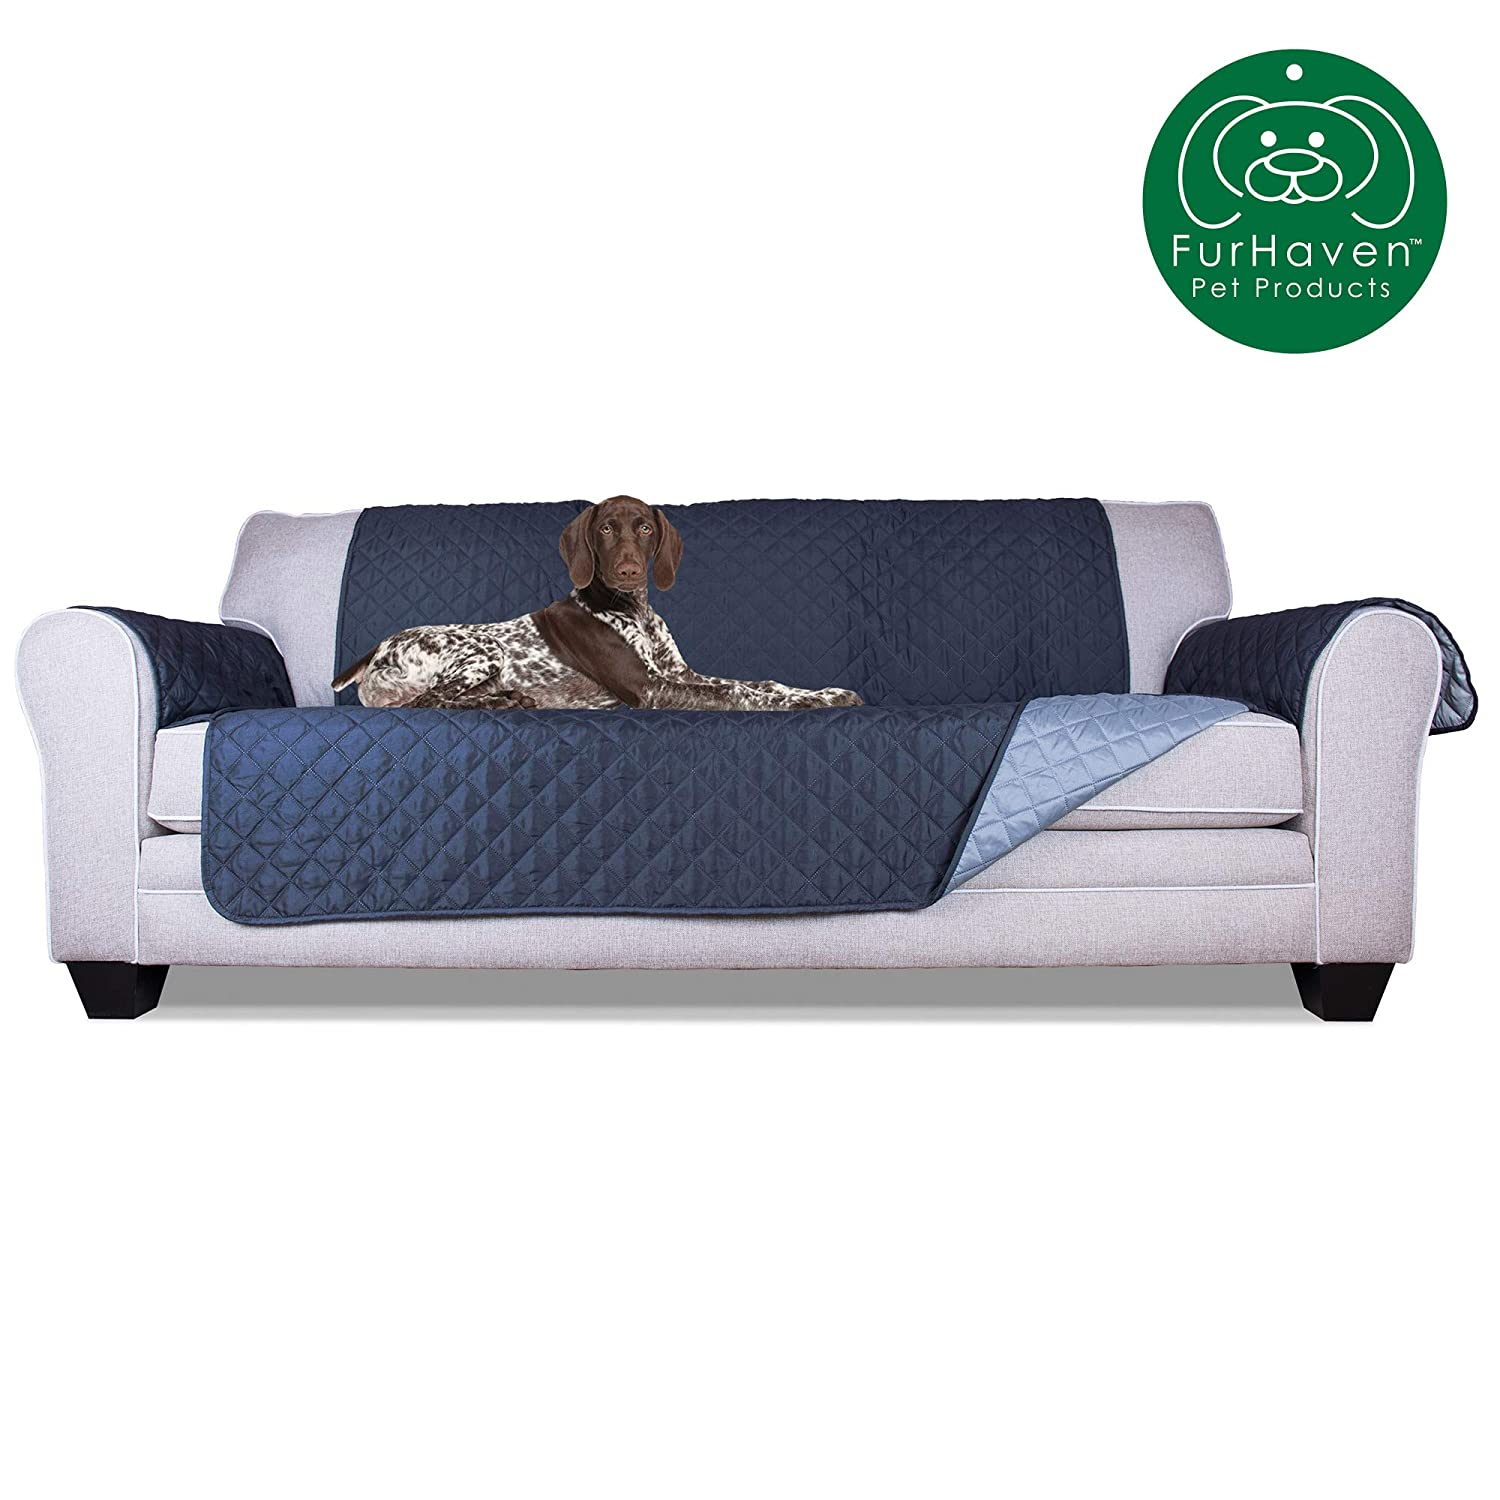 Brilliant Furhaven Pet Furniture Cover Two Tone Reversible Water Resistant Quilted Living Room Furniture Cover Protector Pet Bed For Dogs Cats Available Machost Co Dining Chair Design Ideas Machostcouk